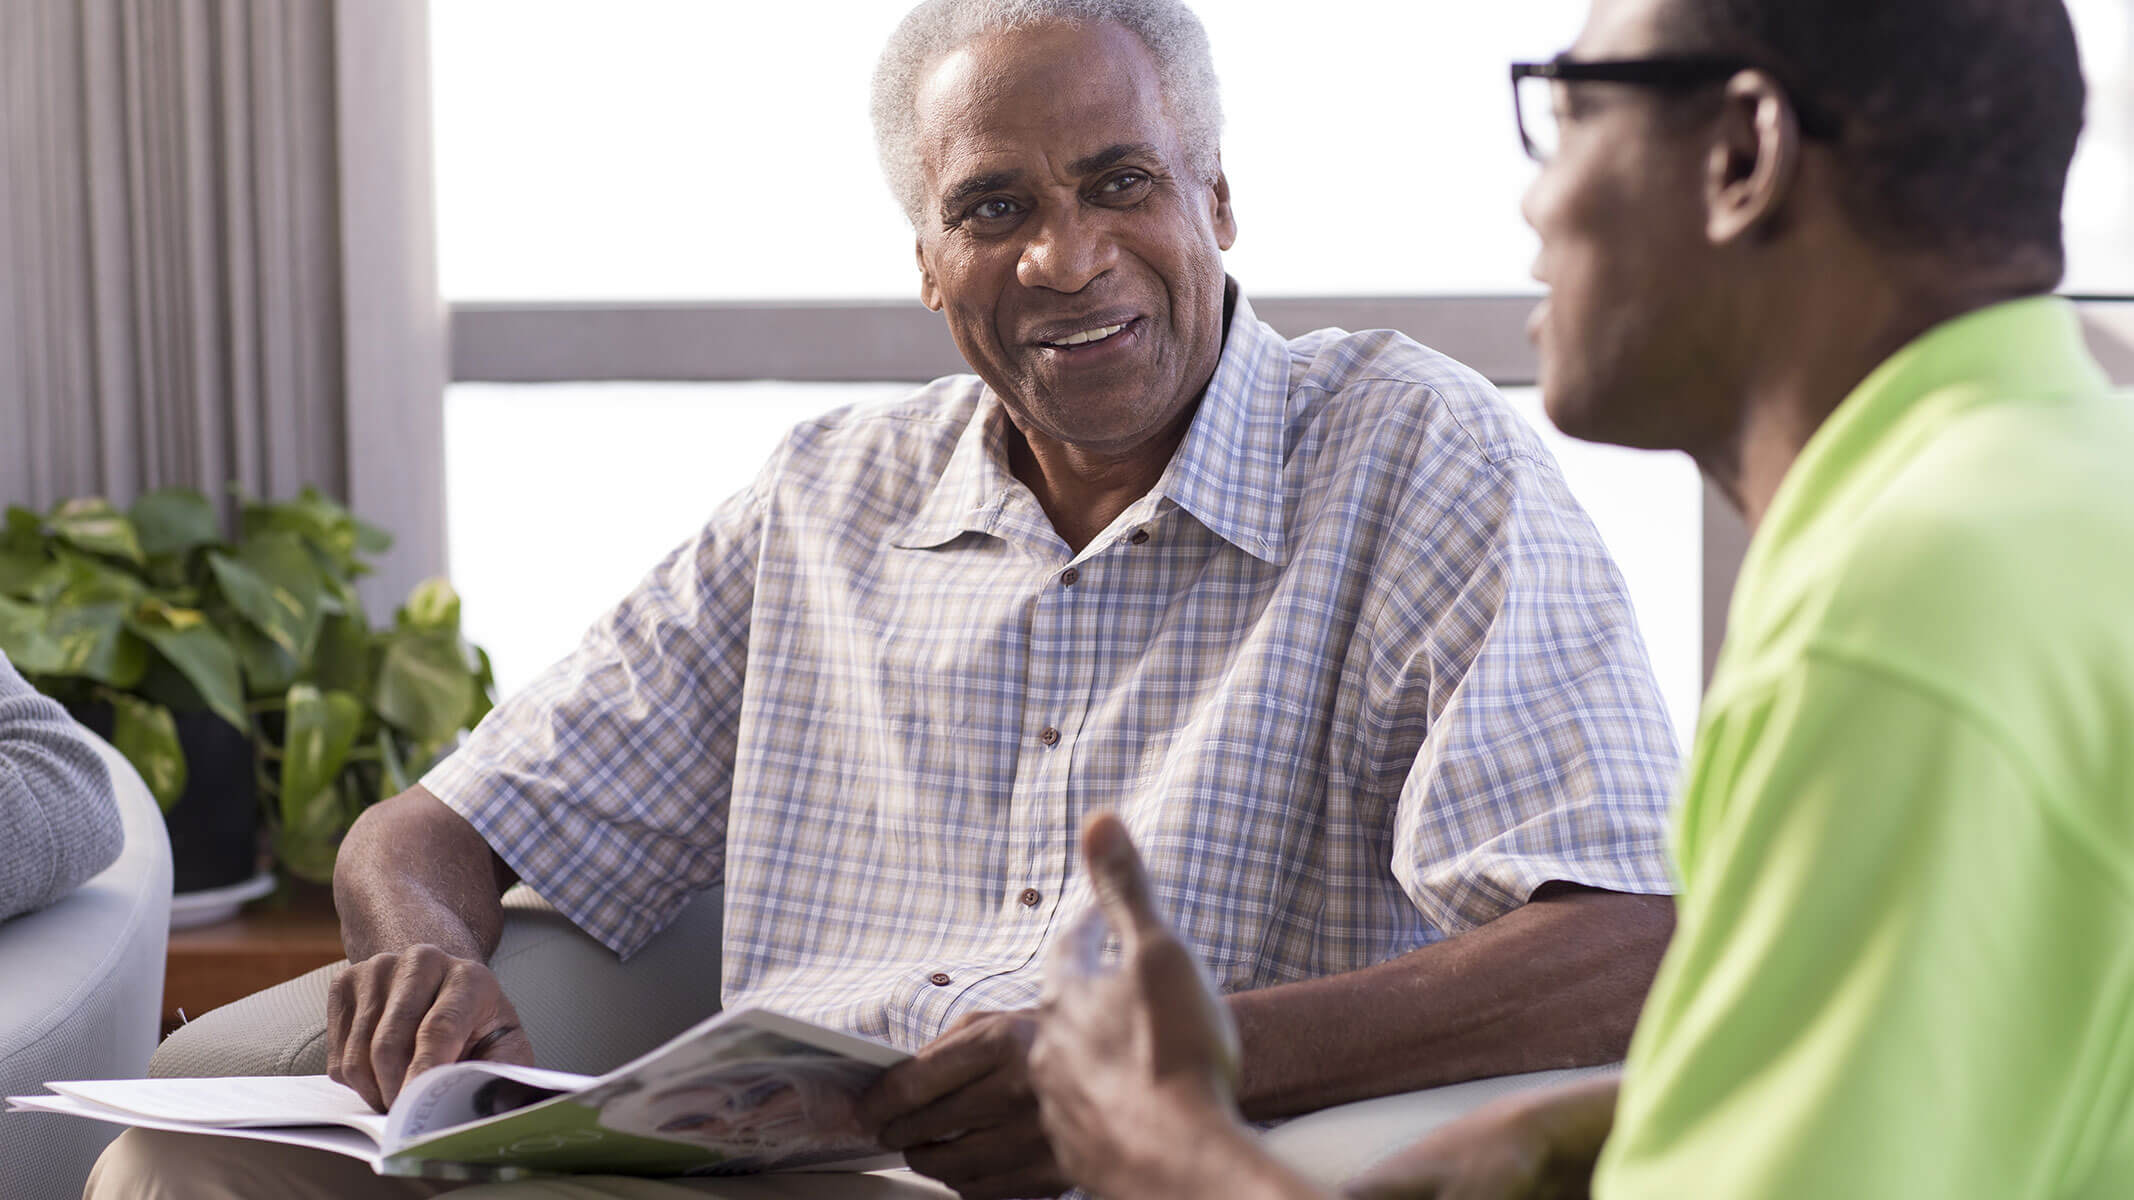 An elderly man flips through a Humana brochure while talking to a Humana agent.